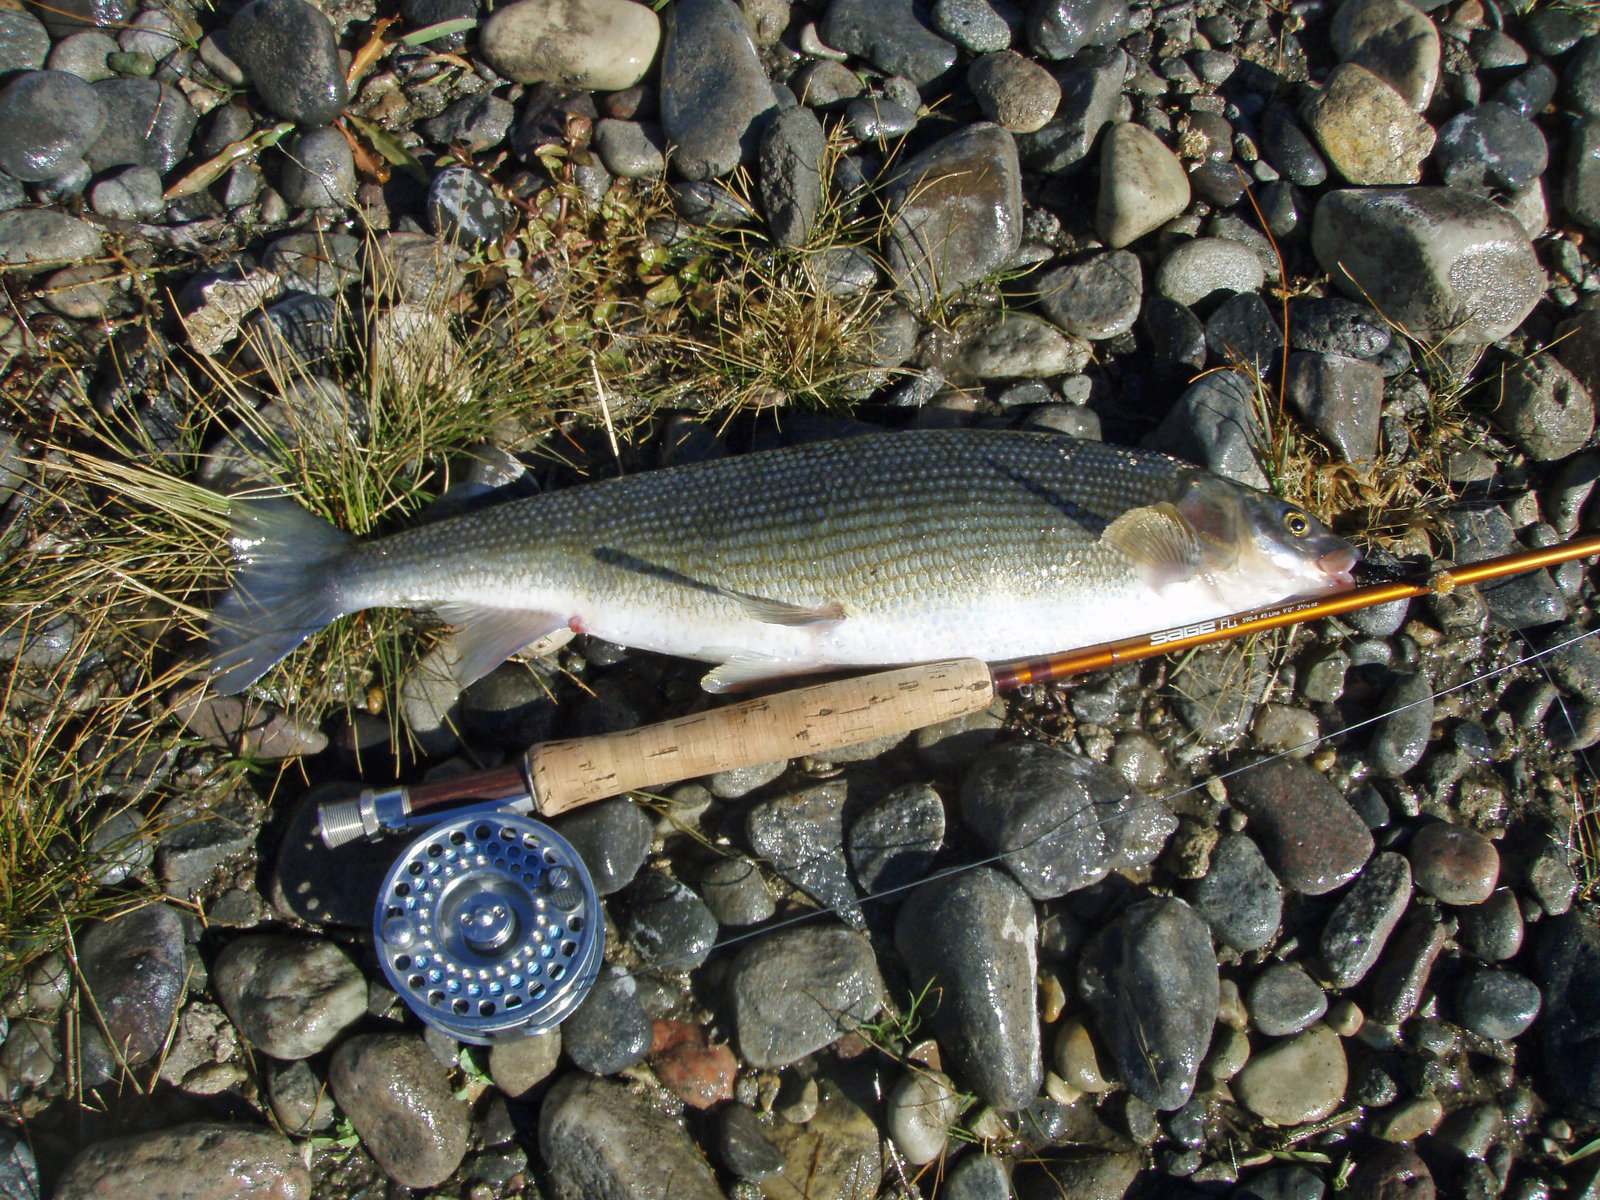 The mountain whitefish is among those dying in large numbers in Montana